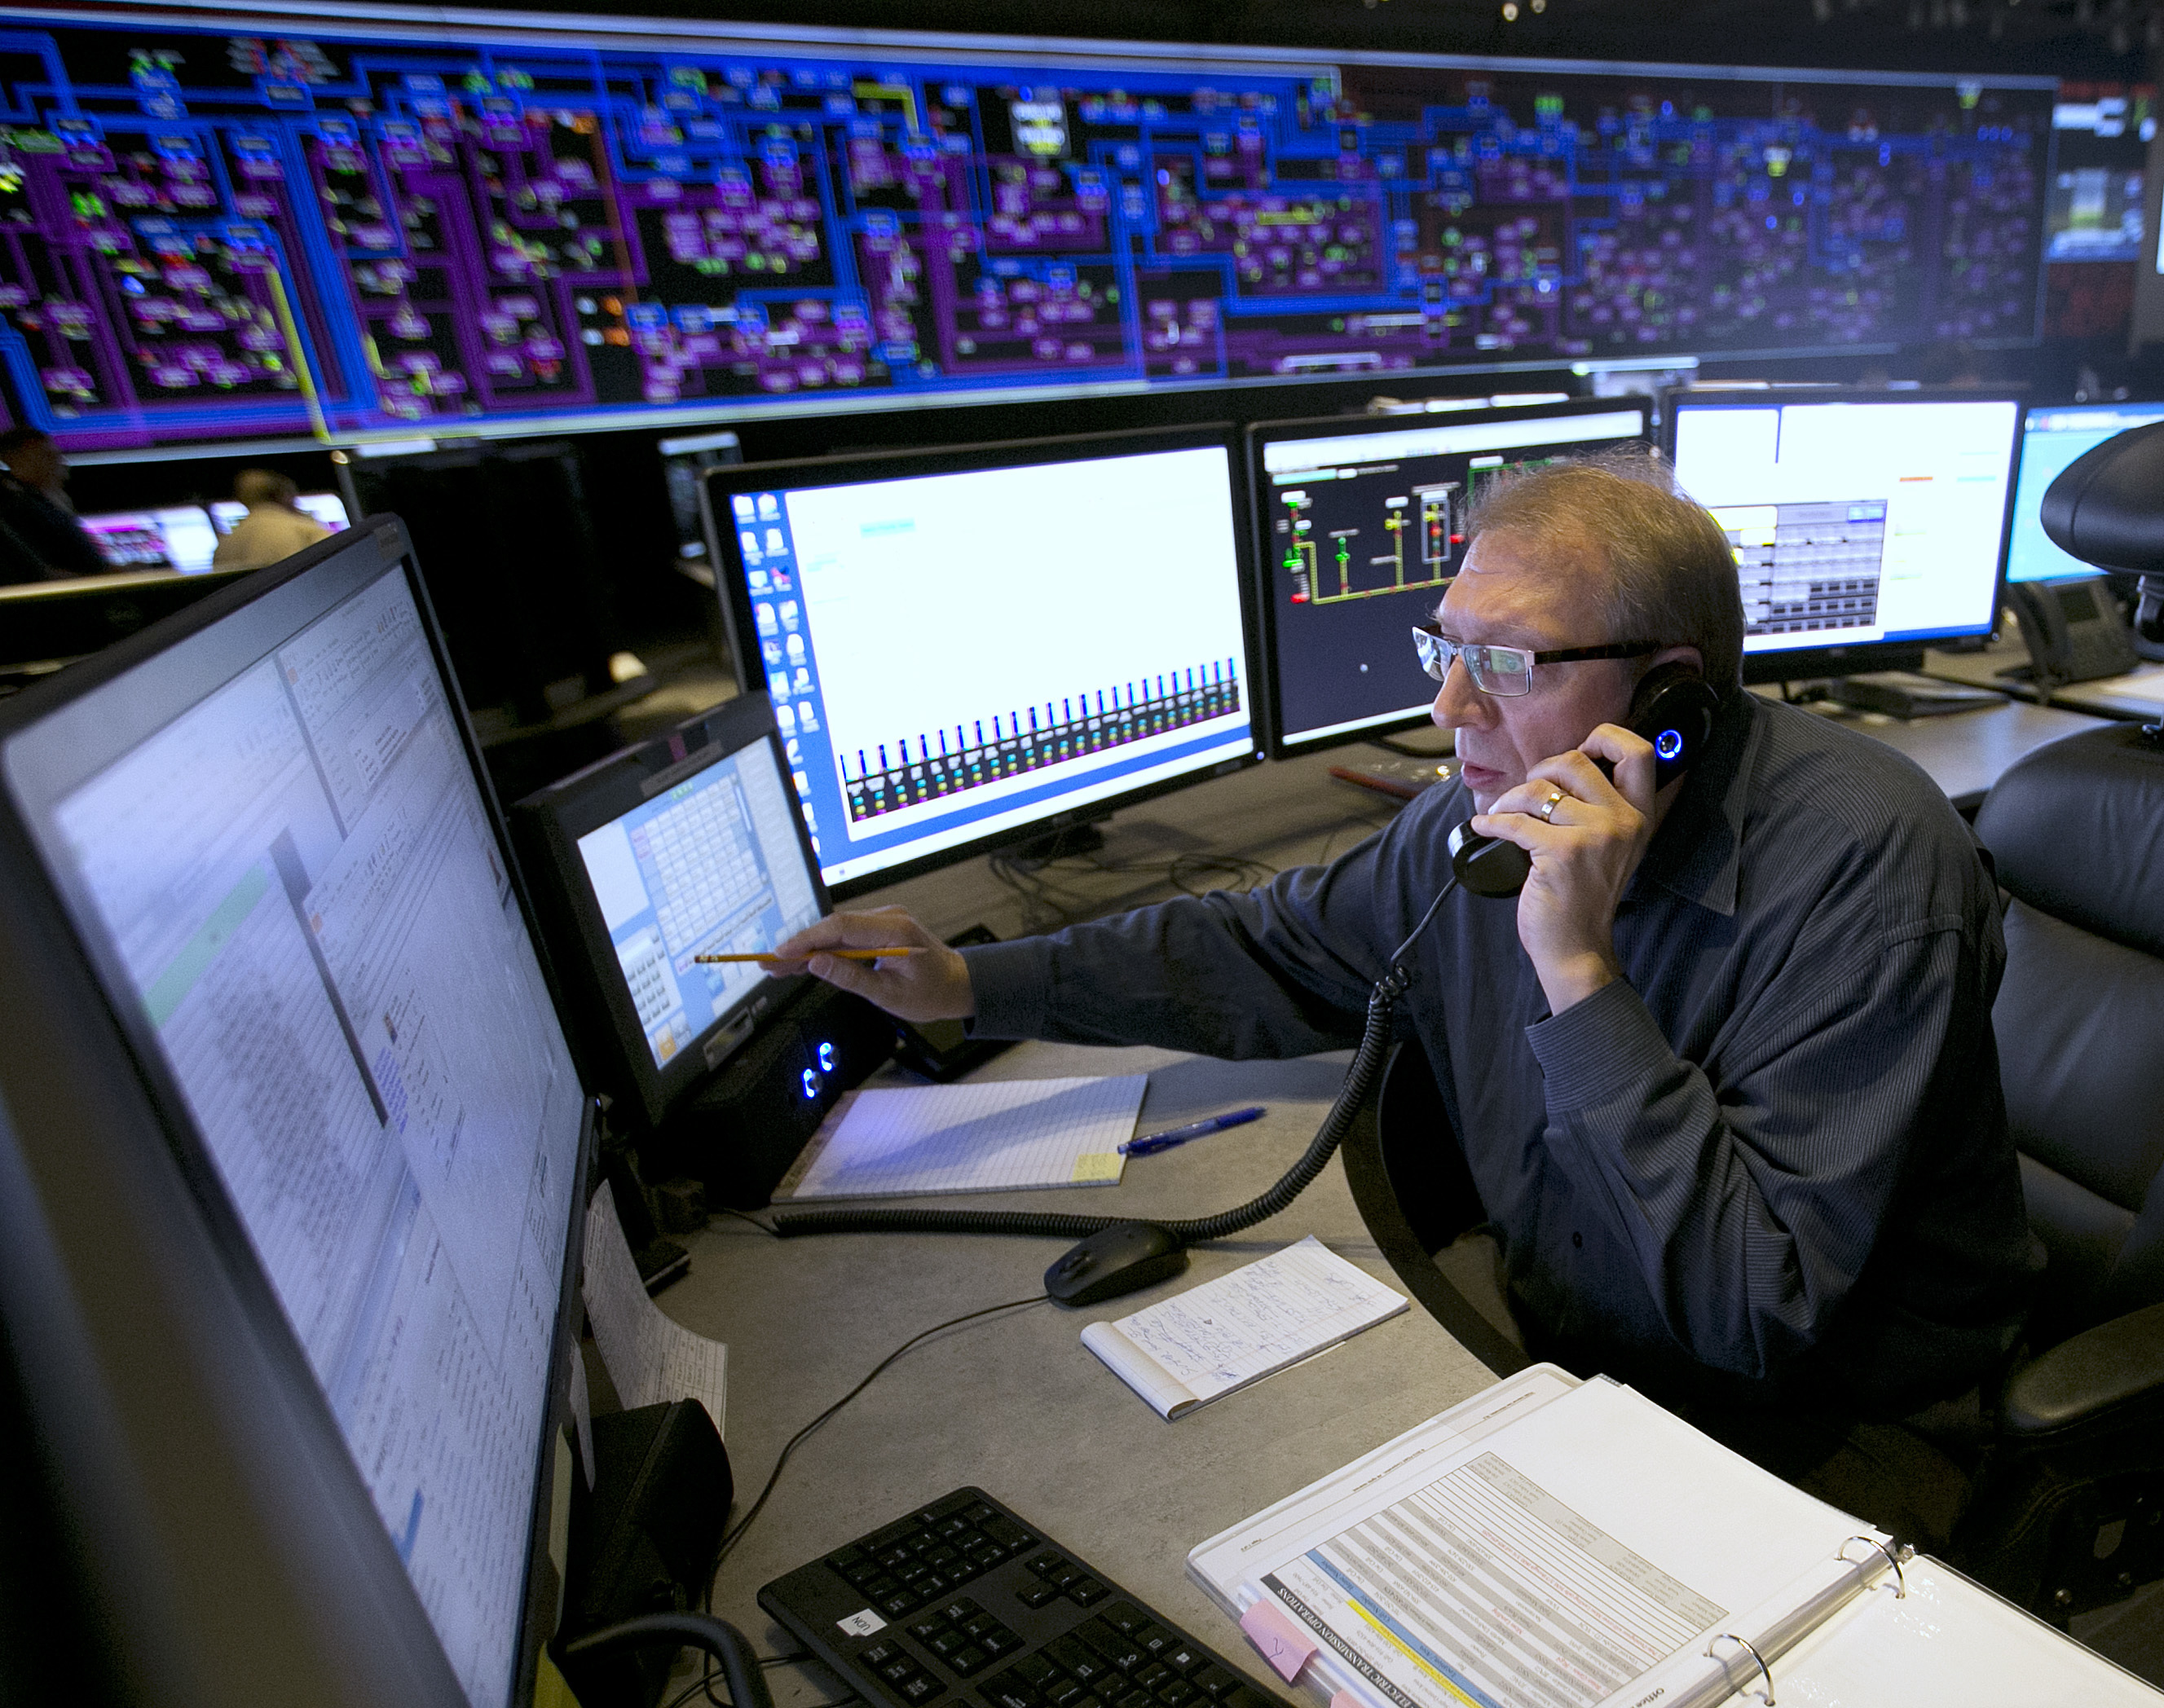 Eclipse Solar Energy In this Thursday, Aug. 7, 2017 photo, Shift Supervisor Gary Anderson, monitors the power system flow and conditions at the Pacific Gas & Electric grid control center, in Vacaville, Calif. Power grid managers say they've been preparing extensively for more than a year for this Monday's solar eclipse and that by ramping up other sources of power, mainly hydroelectric and natural gas, they are confident nobody will lose power or see a spike in energy prices. (AP Photo/Rich Pedroncelli)